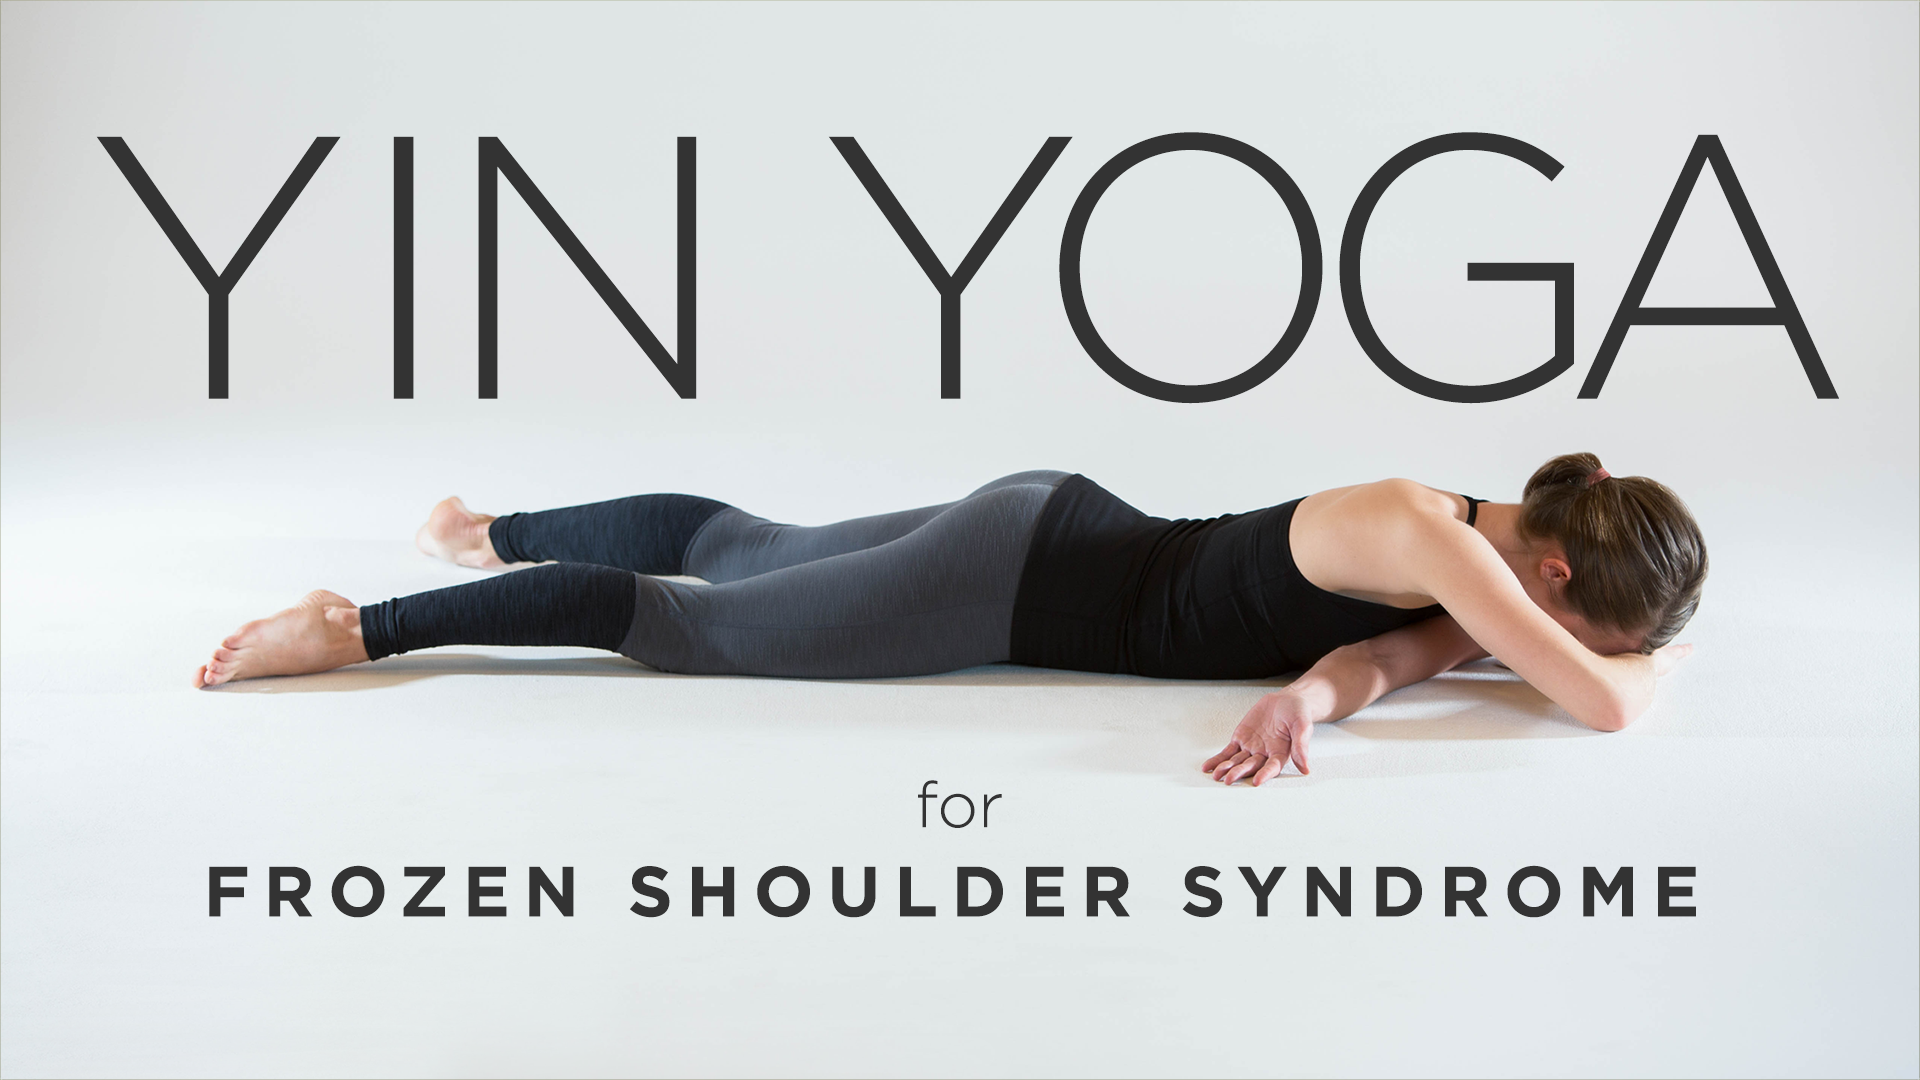 Yin Yoga for Frozen Shoulder Syndrome | Yoga International